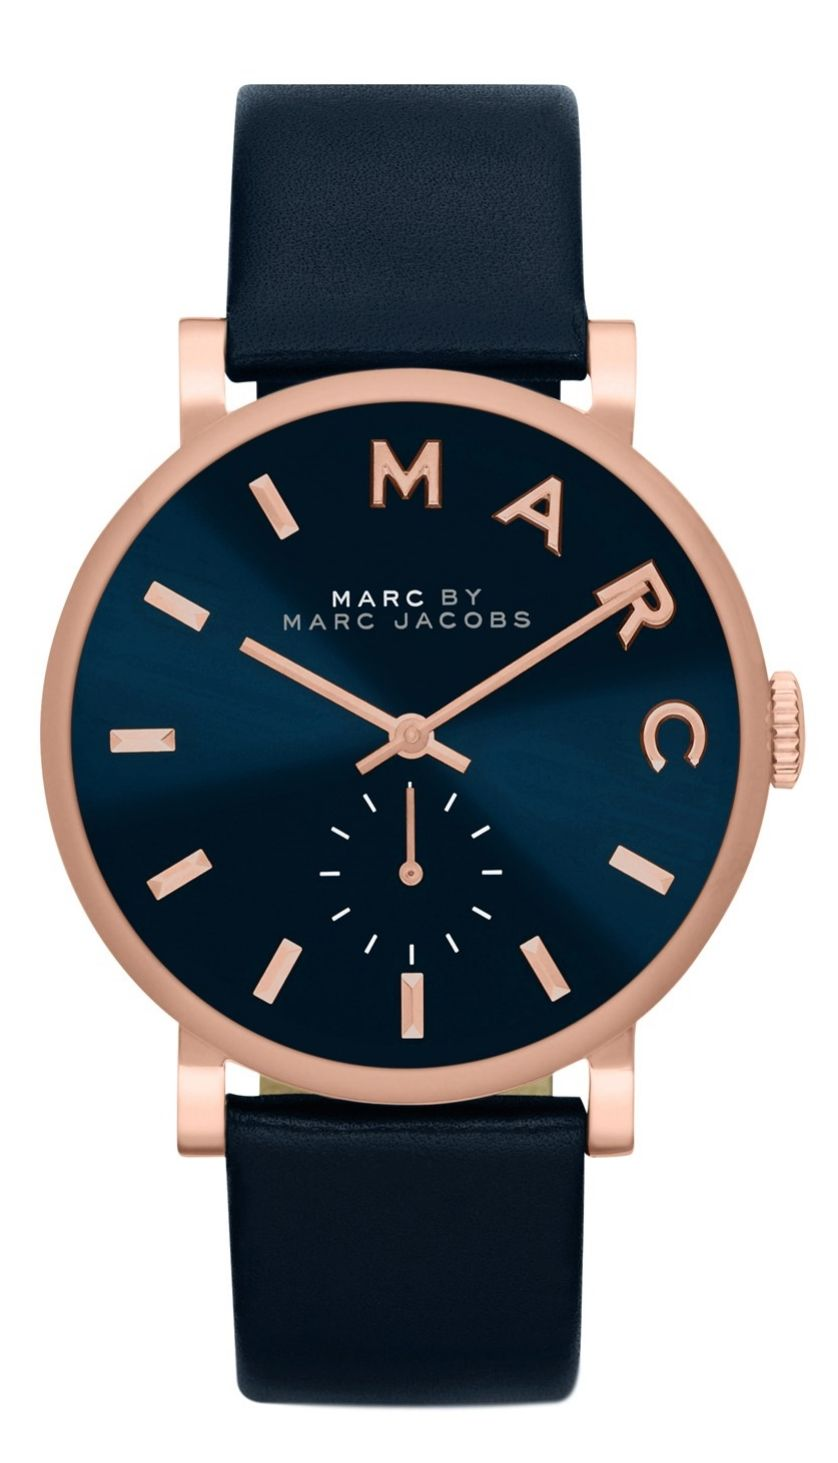 The modern, clean elegance of this navy and rose gold Marc Jacobs watch  makes it versatile enough to wear everyday. c5d01a3ea8